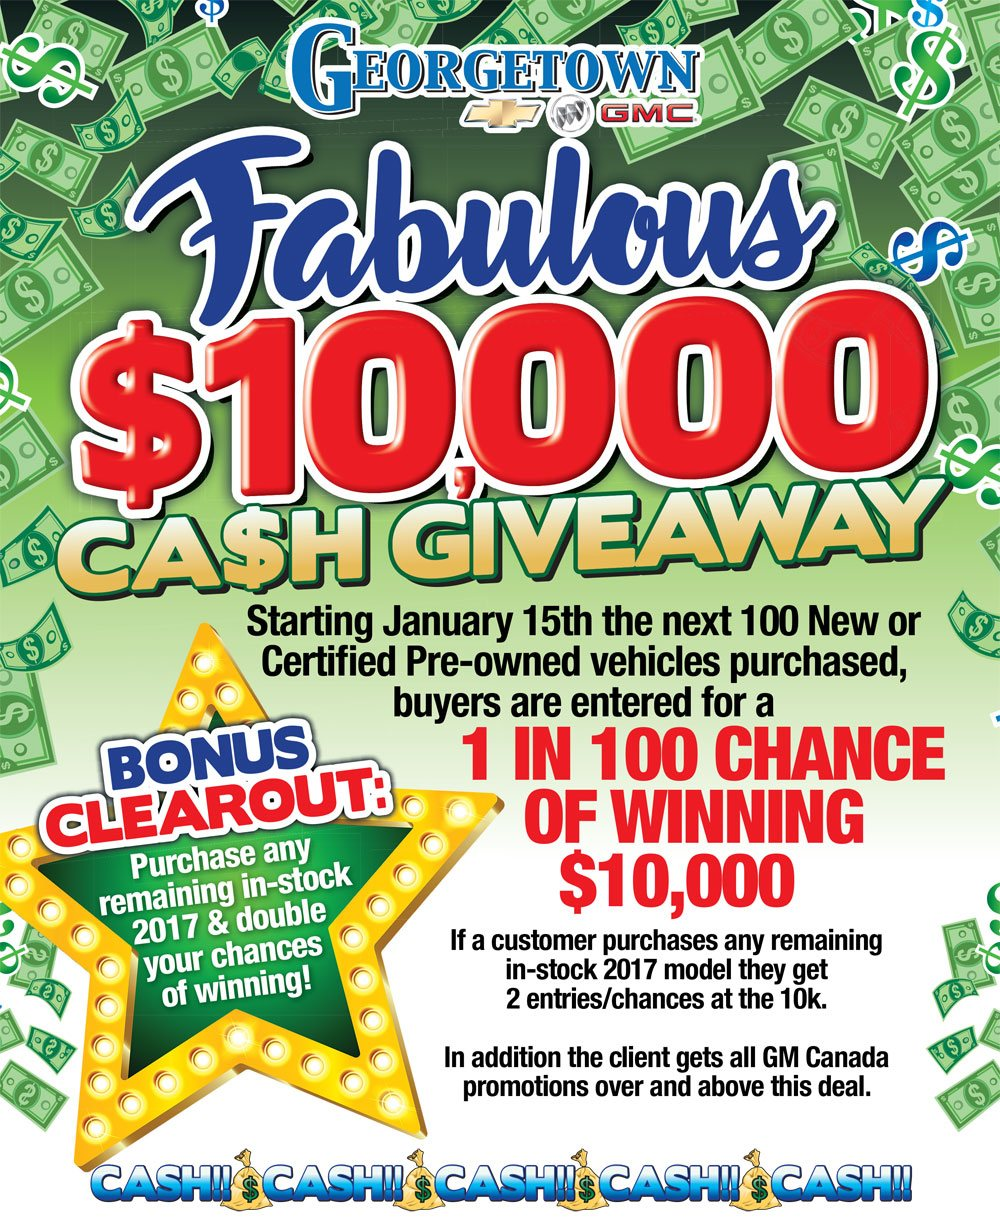 Get your shot at $10,000 cash from Georgetown Chevrolet. Starting January 15th the next 100 new or certified pre-owned vehicles purchased, buyers are entered for a 1 in 100 chance to winning $10,000!